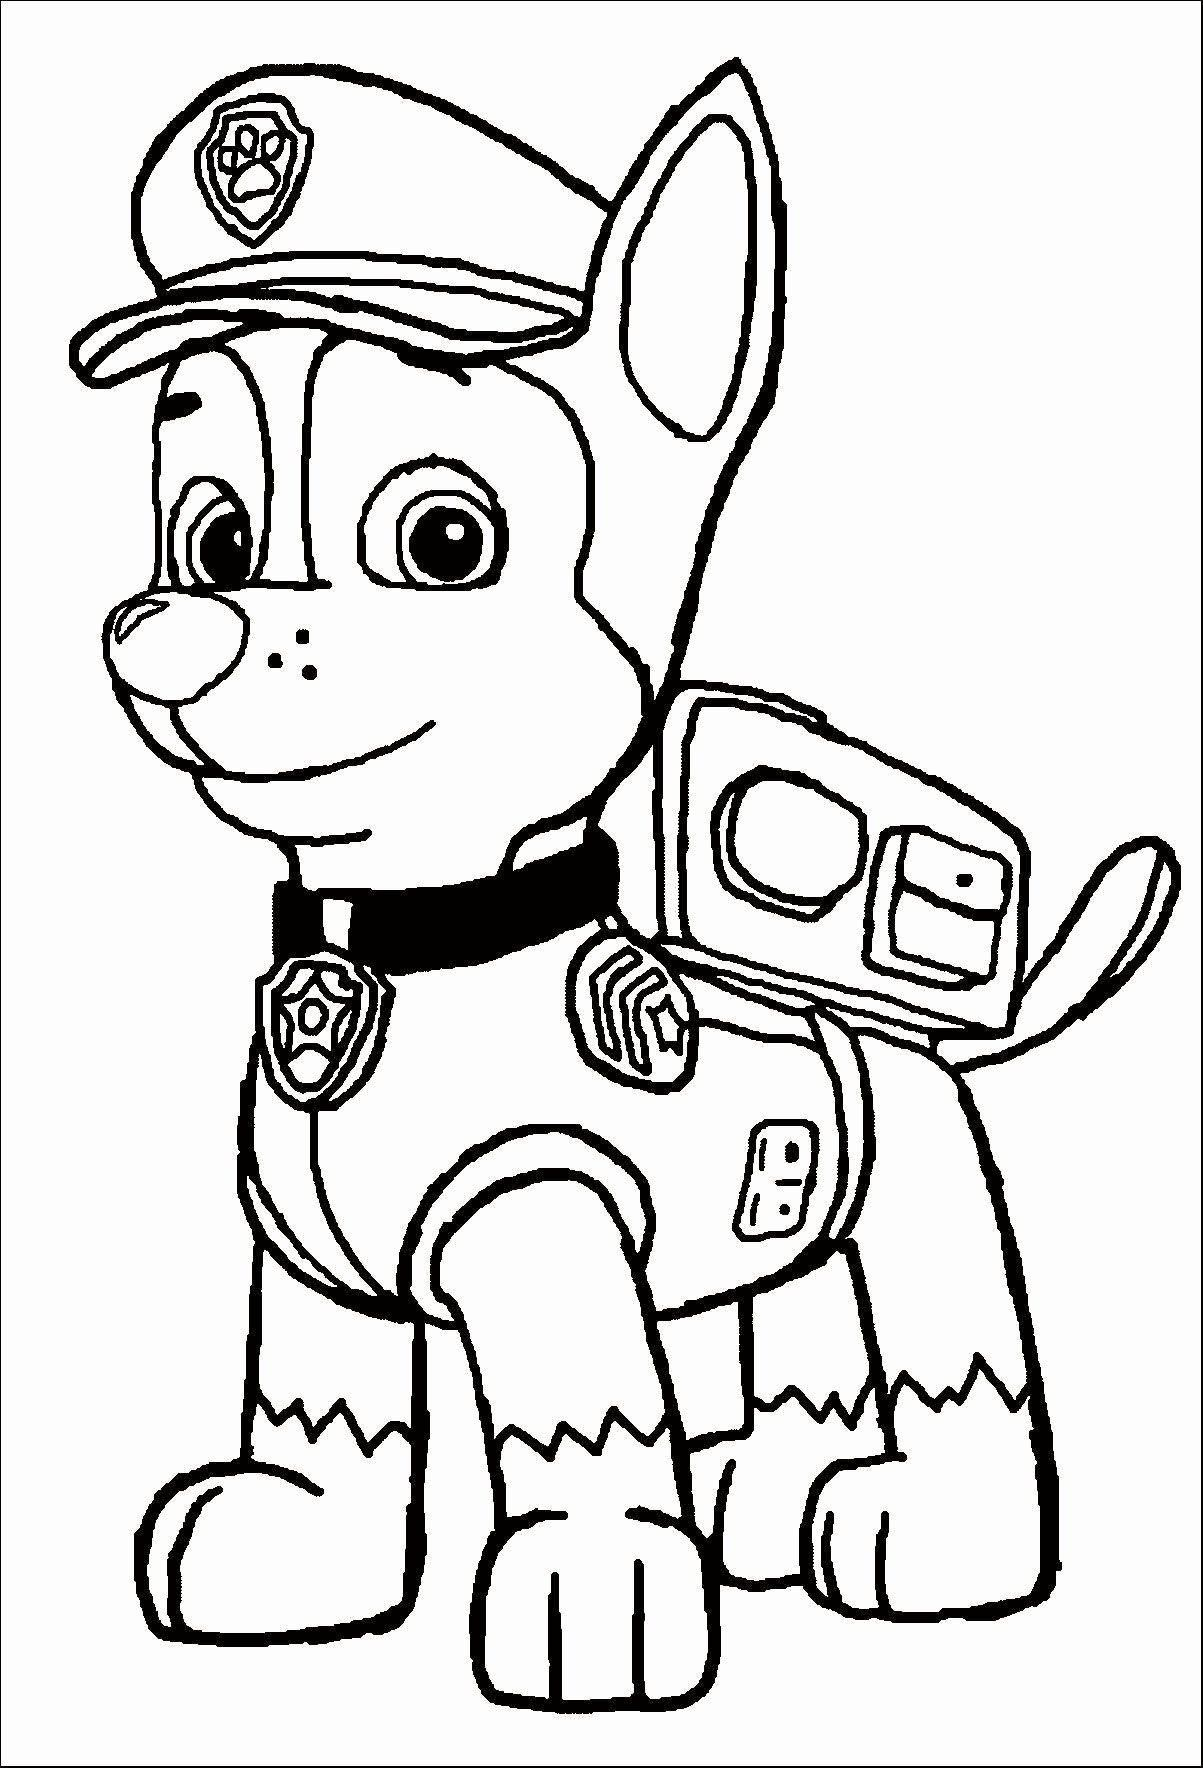 Robo Dog Paw Patrol Coloring Page Youngandtae Com Paw Patrol Coloring Pages Halloween Coloring Pages Paw Patrol Coloring